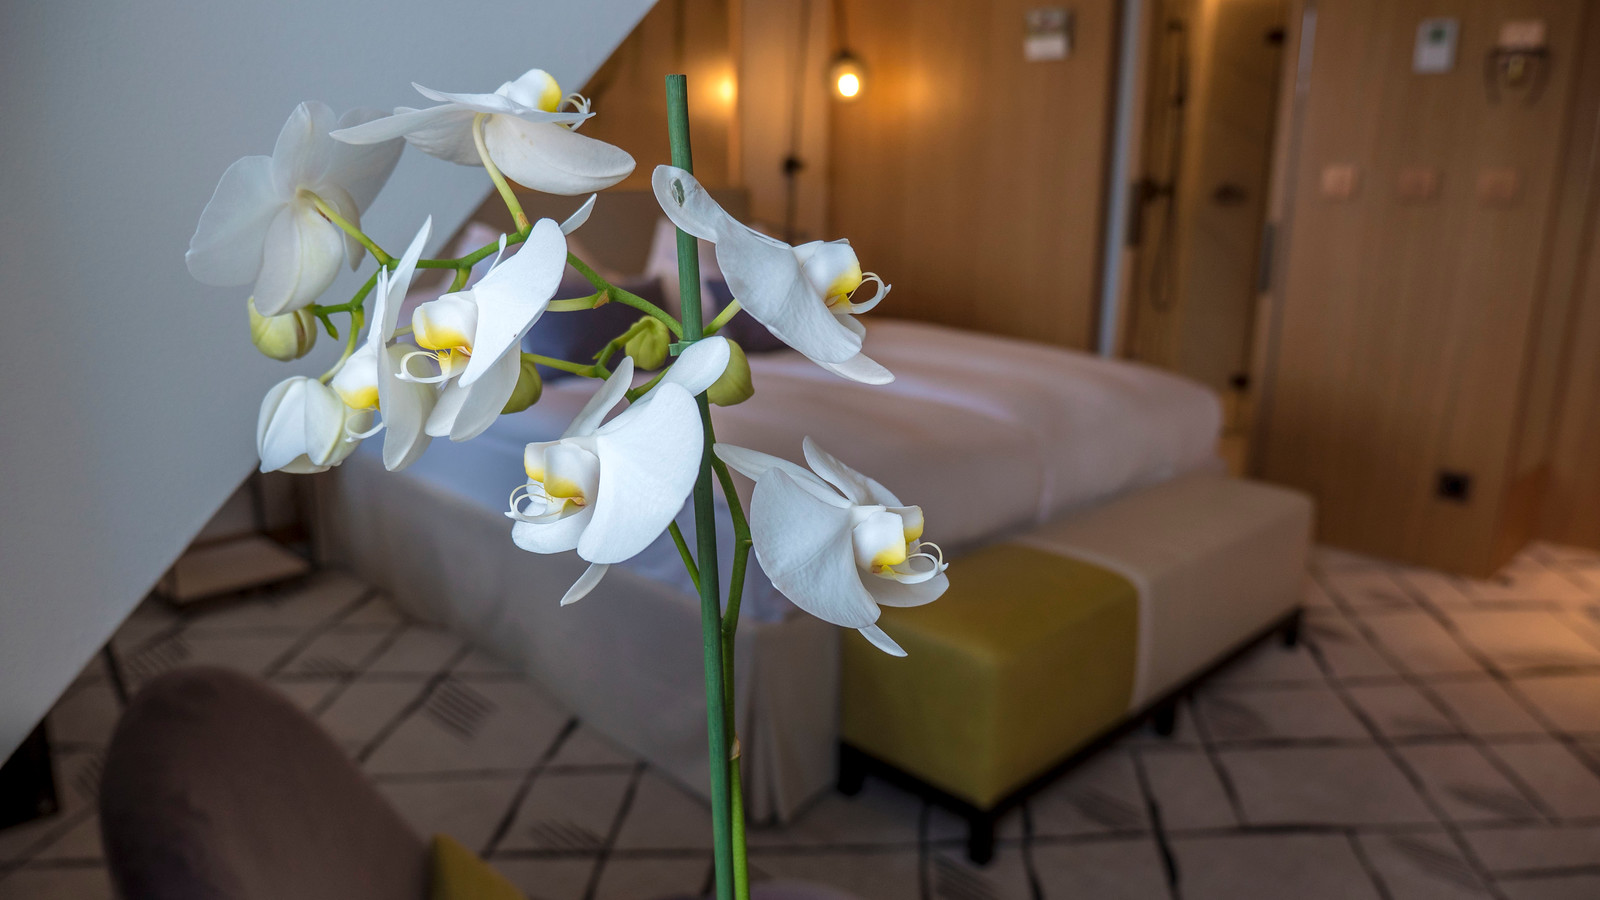 Close-up of the beautiful orchid in our room at the Hotel Storchen Zurich.